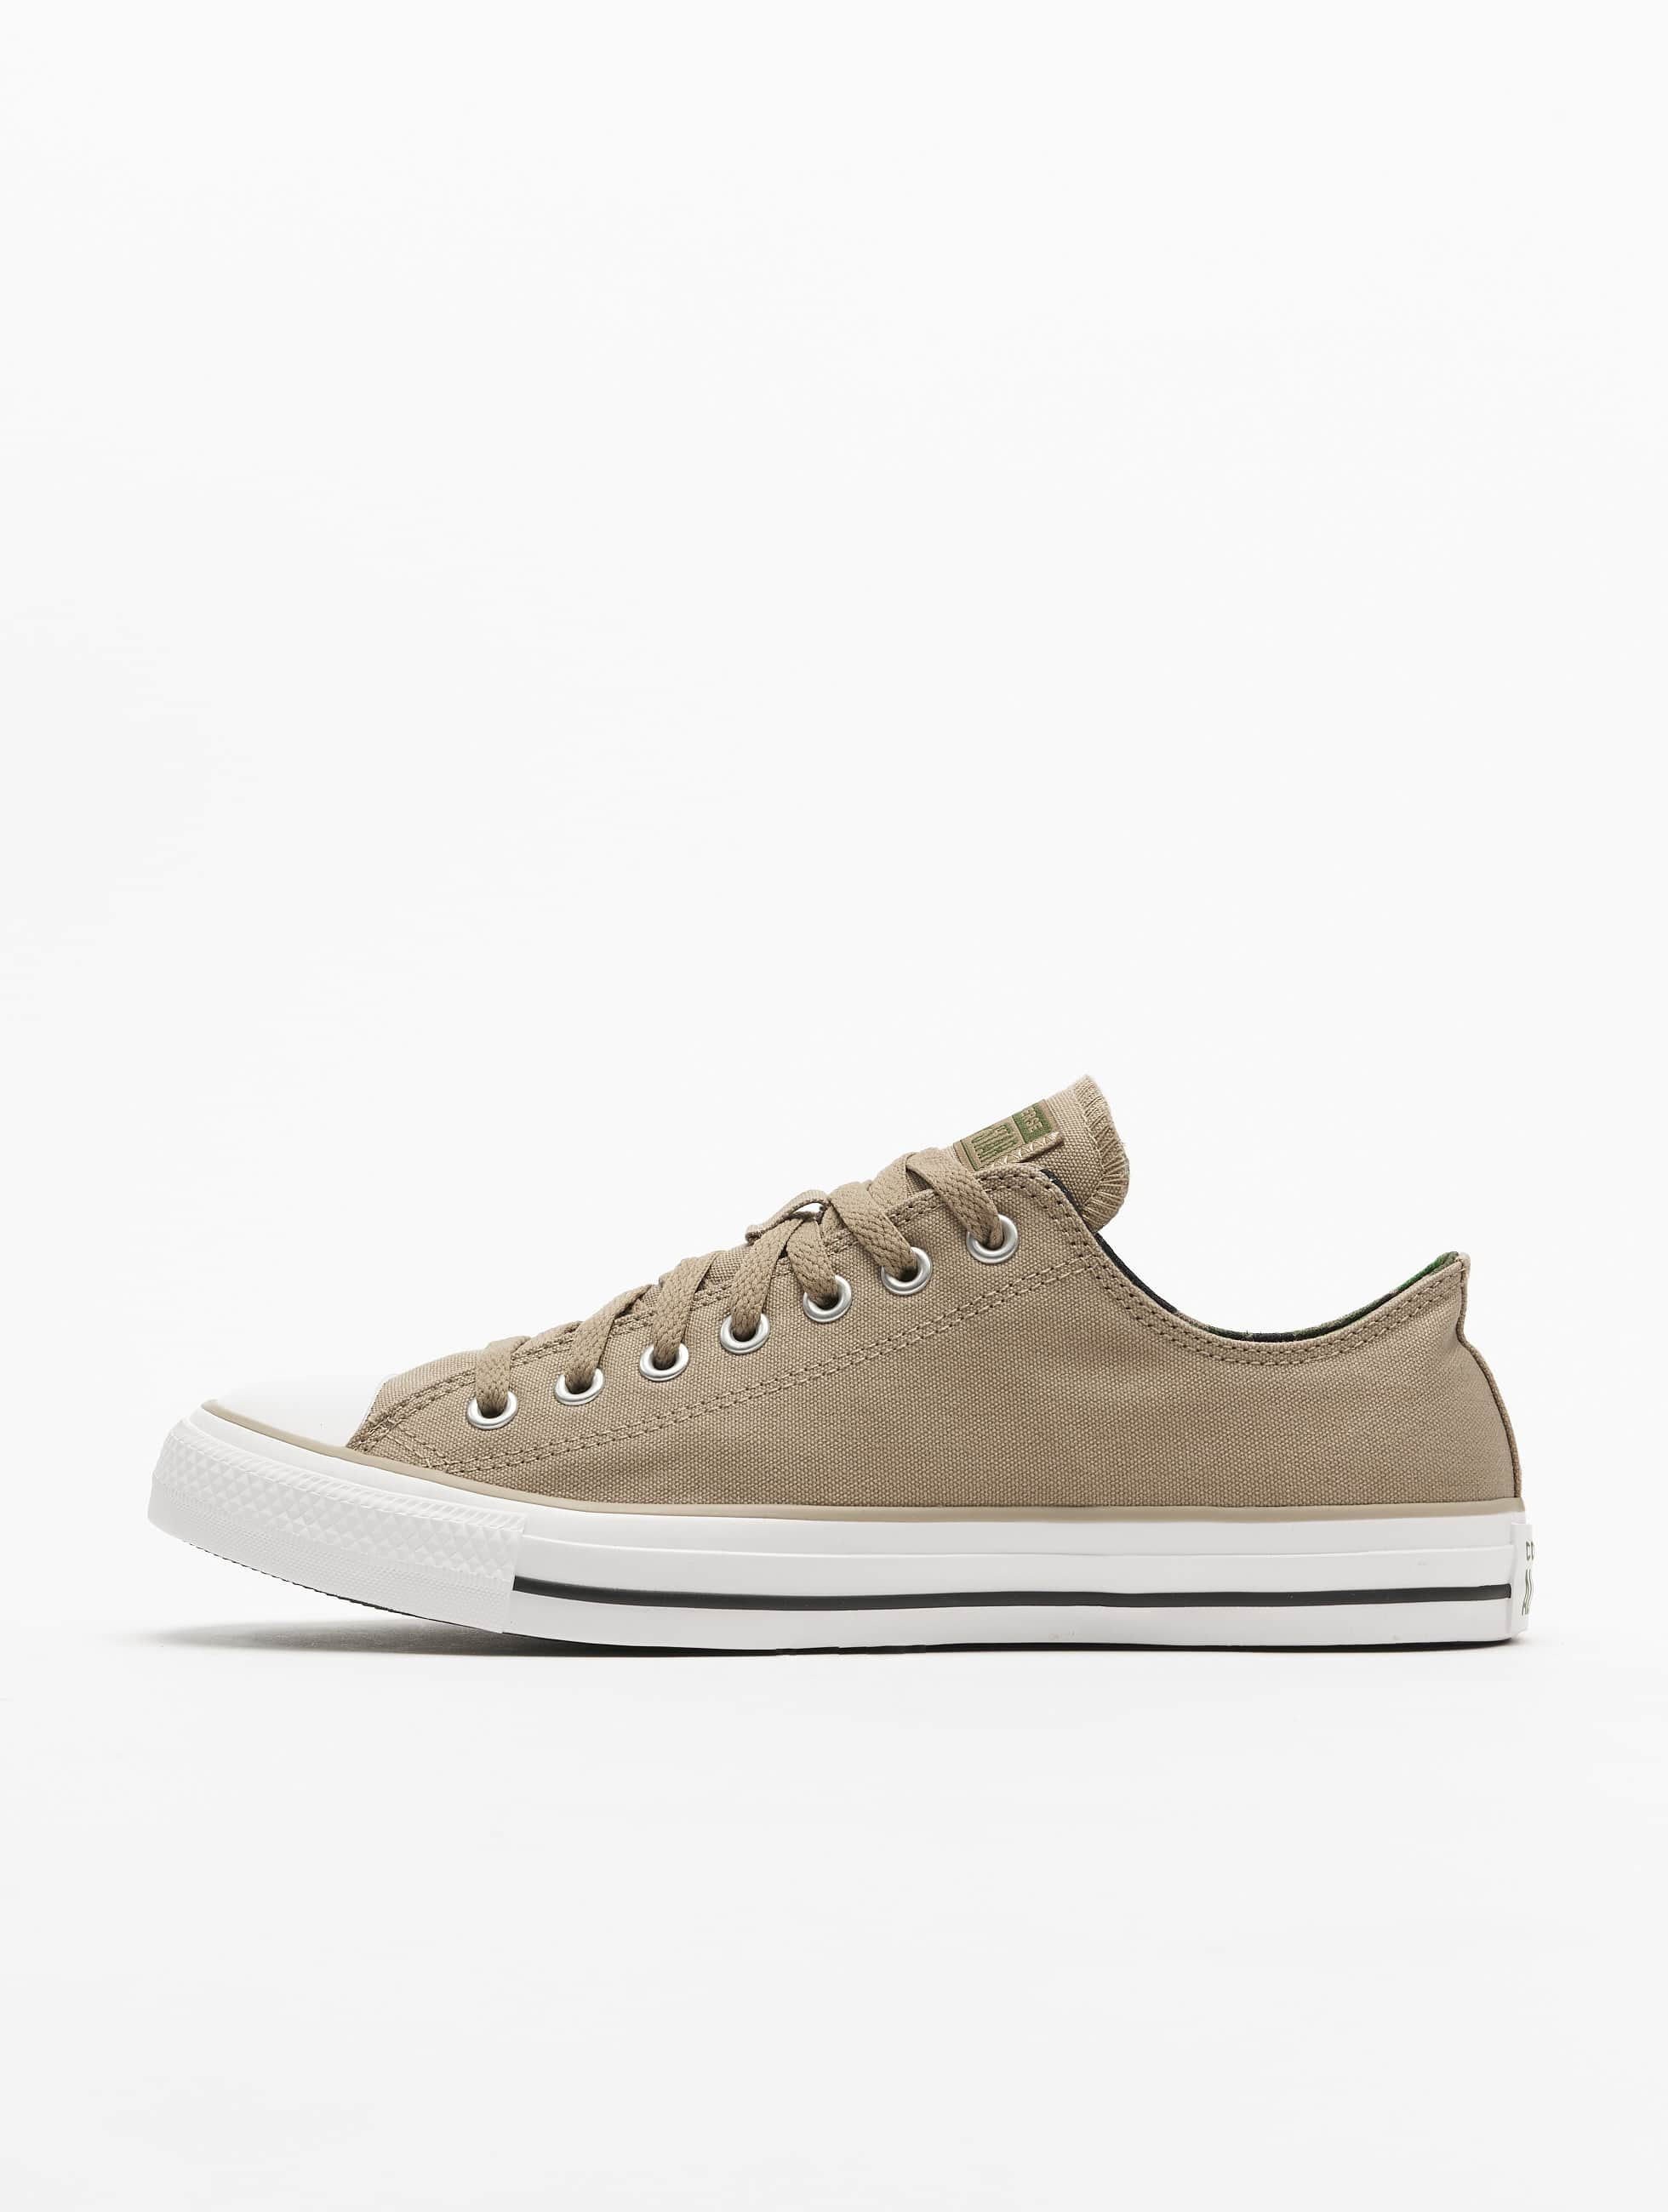 CONVERSE Baskets Ctas Season Ox Canvas Femme Kaki Achat